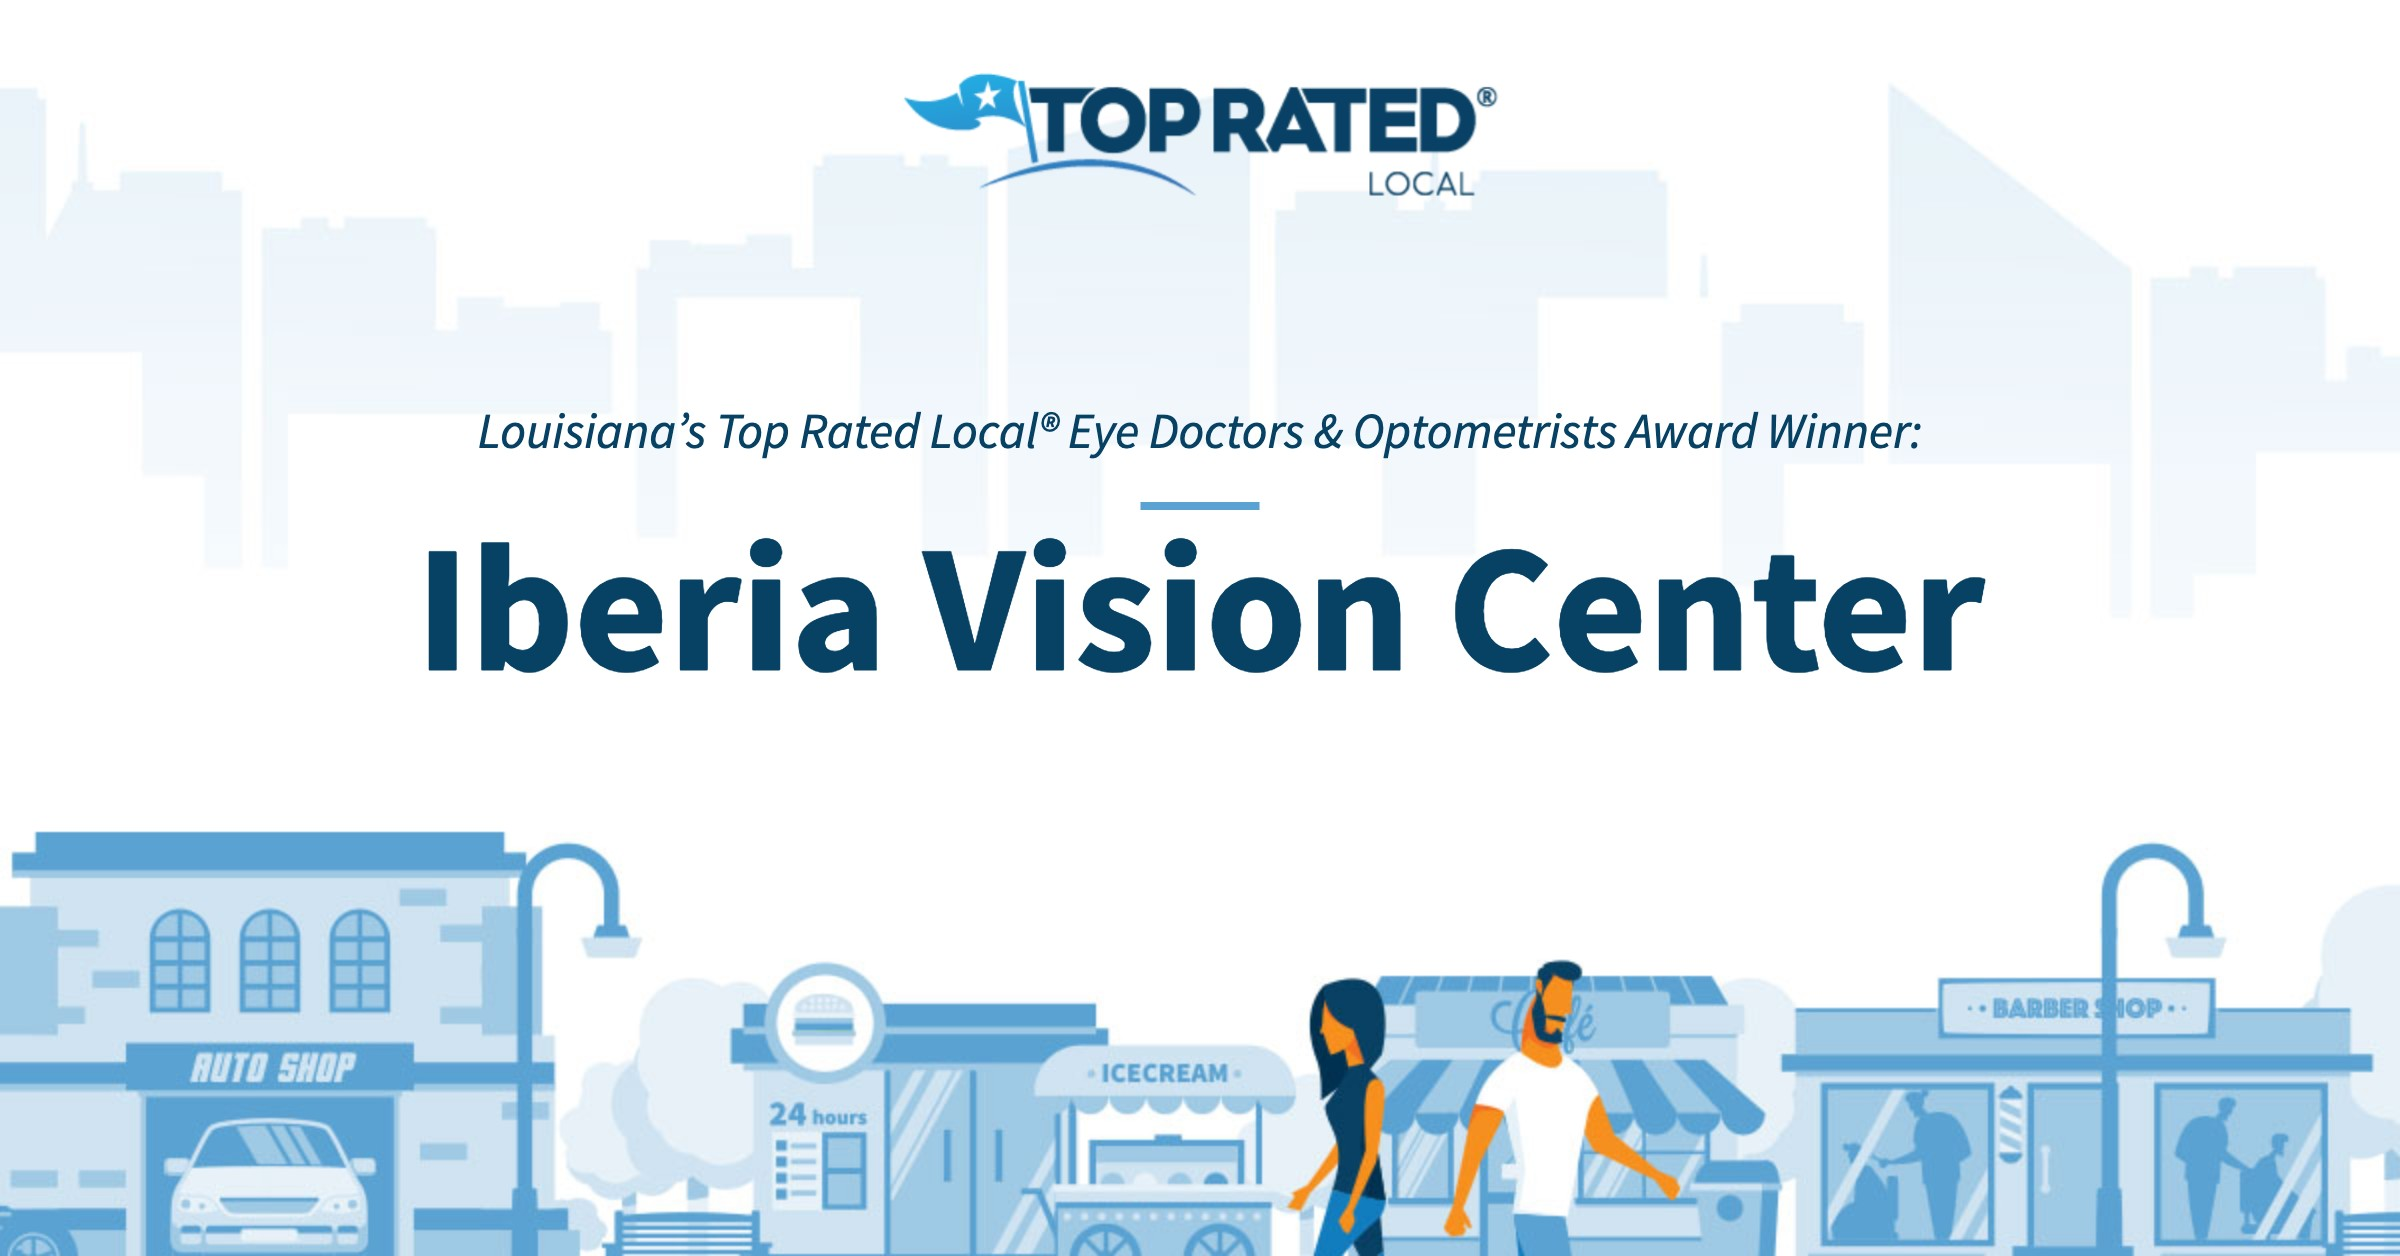 Louisiana's Top Rated Local® Eye Doctors & Optometrists Award Winner: Iberia Vision Center